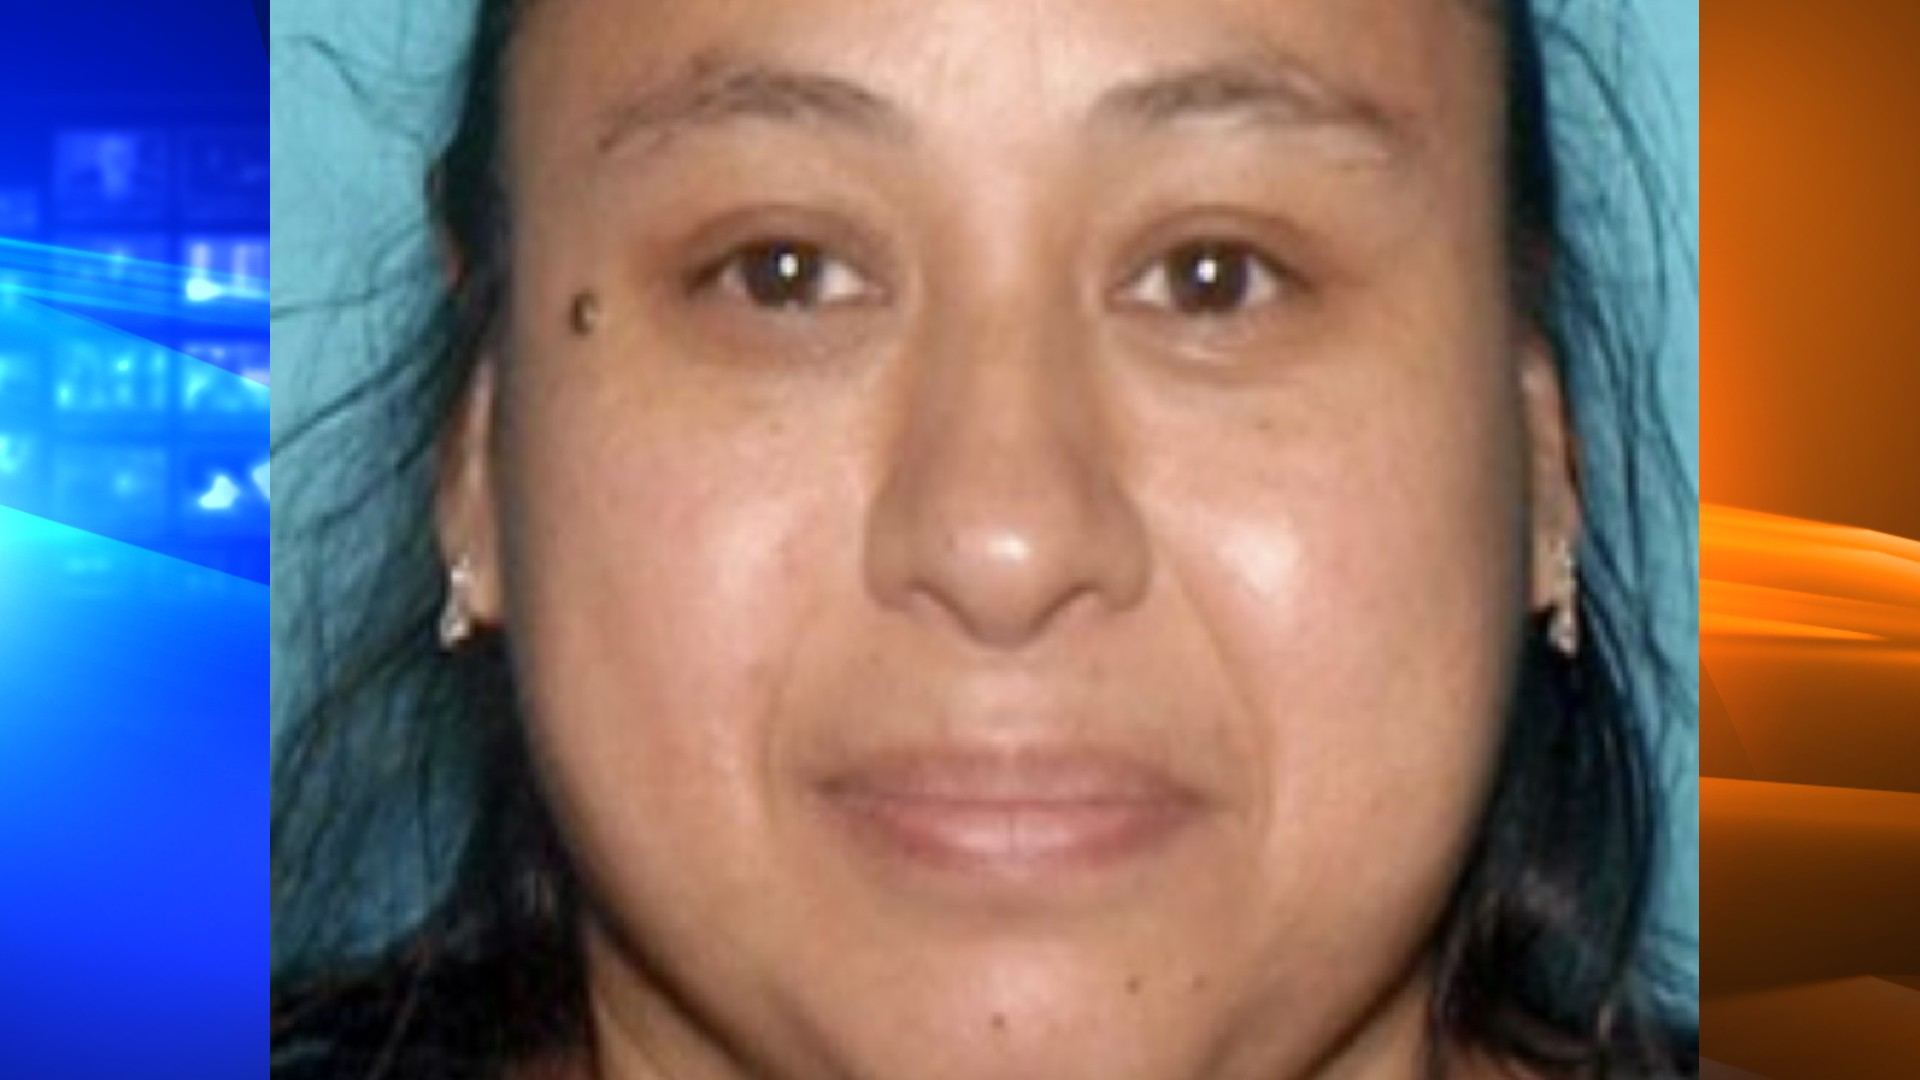 Muriel Carolina Vallejos Flores is seen in this image provided by the Los Angeles Police Department.